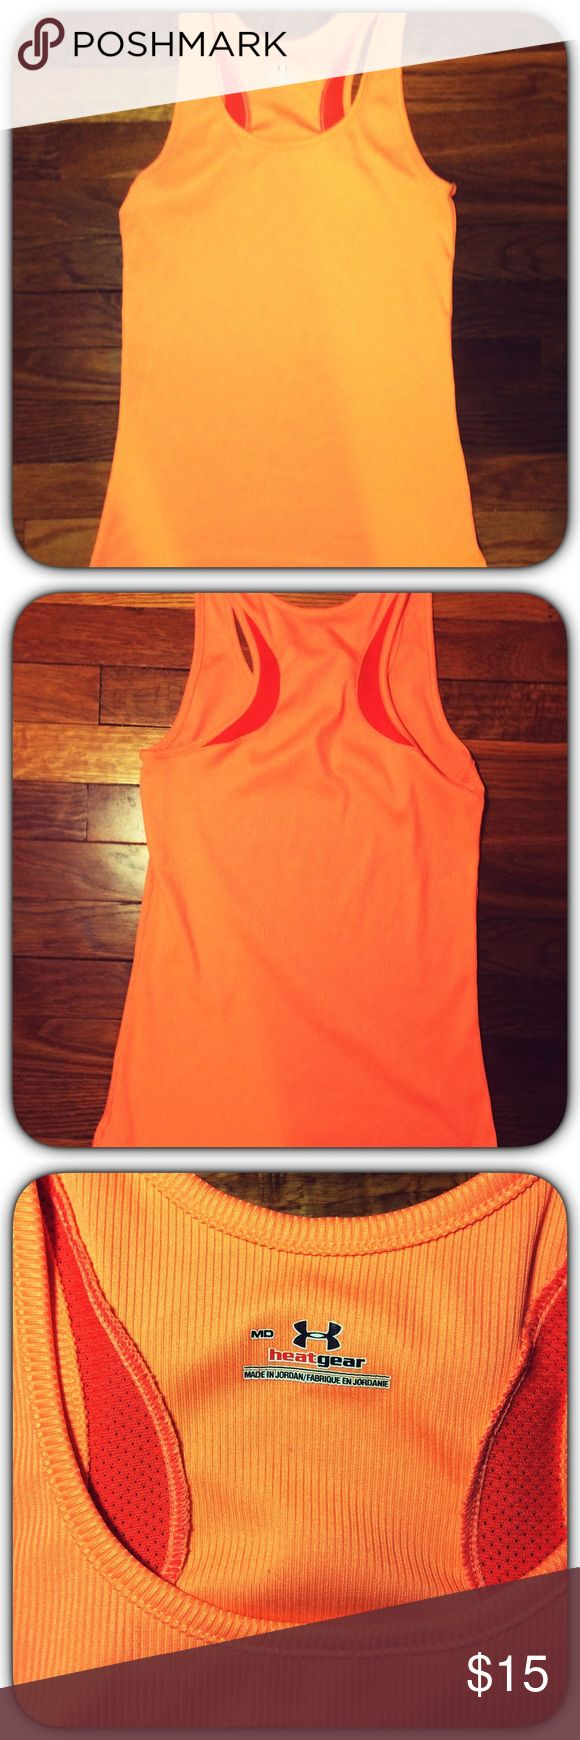 Under Armour Tank Top Under Armour Tank Top! Excellent Condition Like New!!! Size Medium! Sunset Orange! ** Free Under Armour Headband W/ Every UA Purchase In My Closet While Supplies Last!! ** ✨ Repeated Buyer Discount Offered & Available!!! ✨ *Save to bundle more UA in my closet! * Under Armour Tops Tank Tops